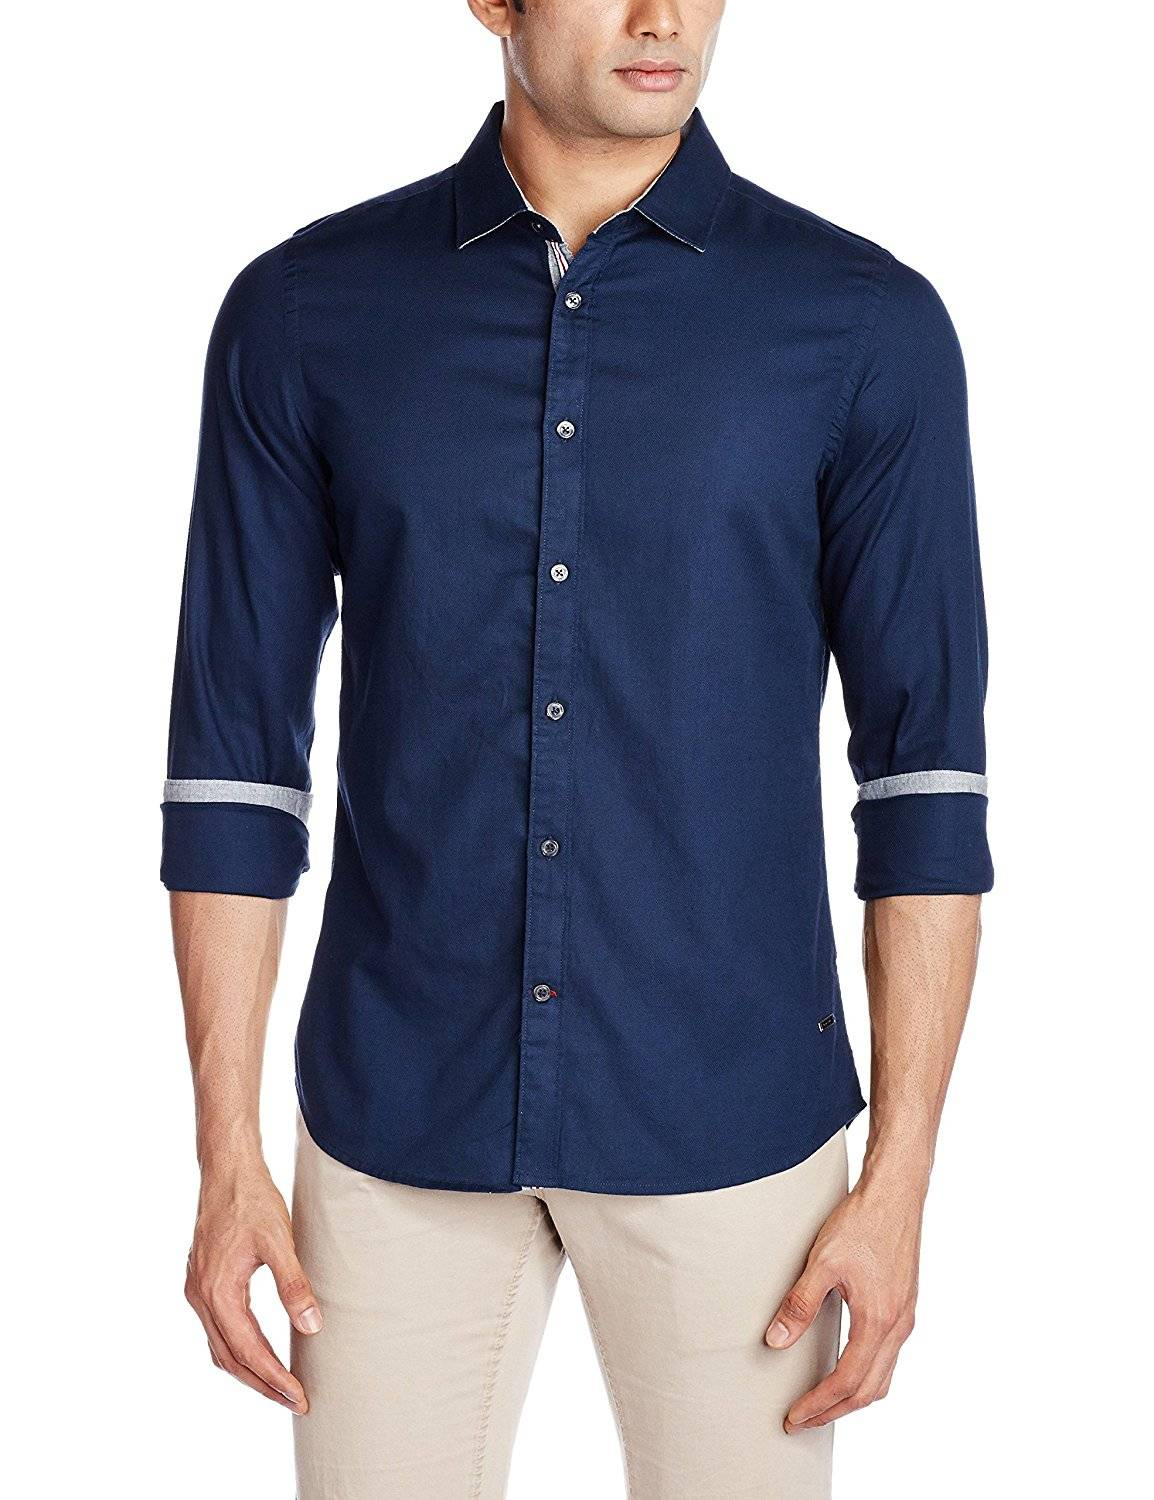 Get upto 70% OFF on Being Human Men's Casual shirts Brand